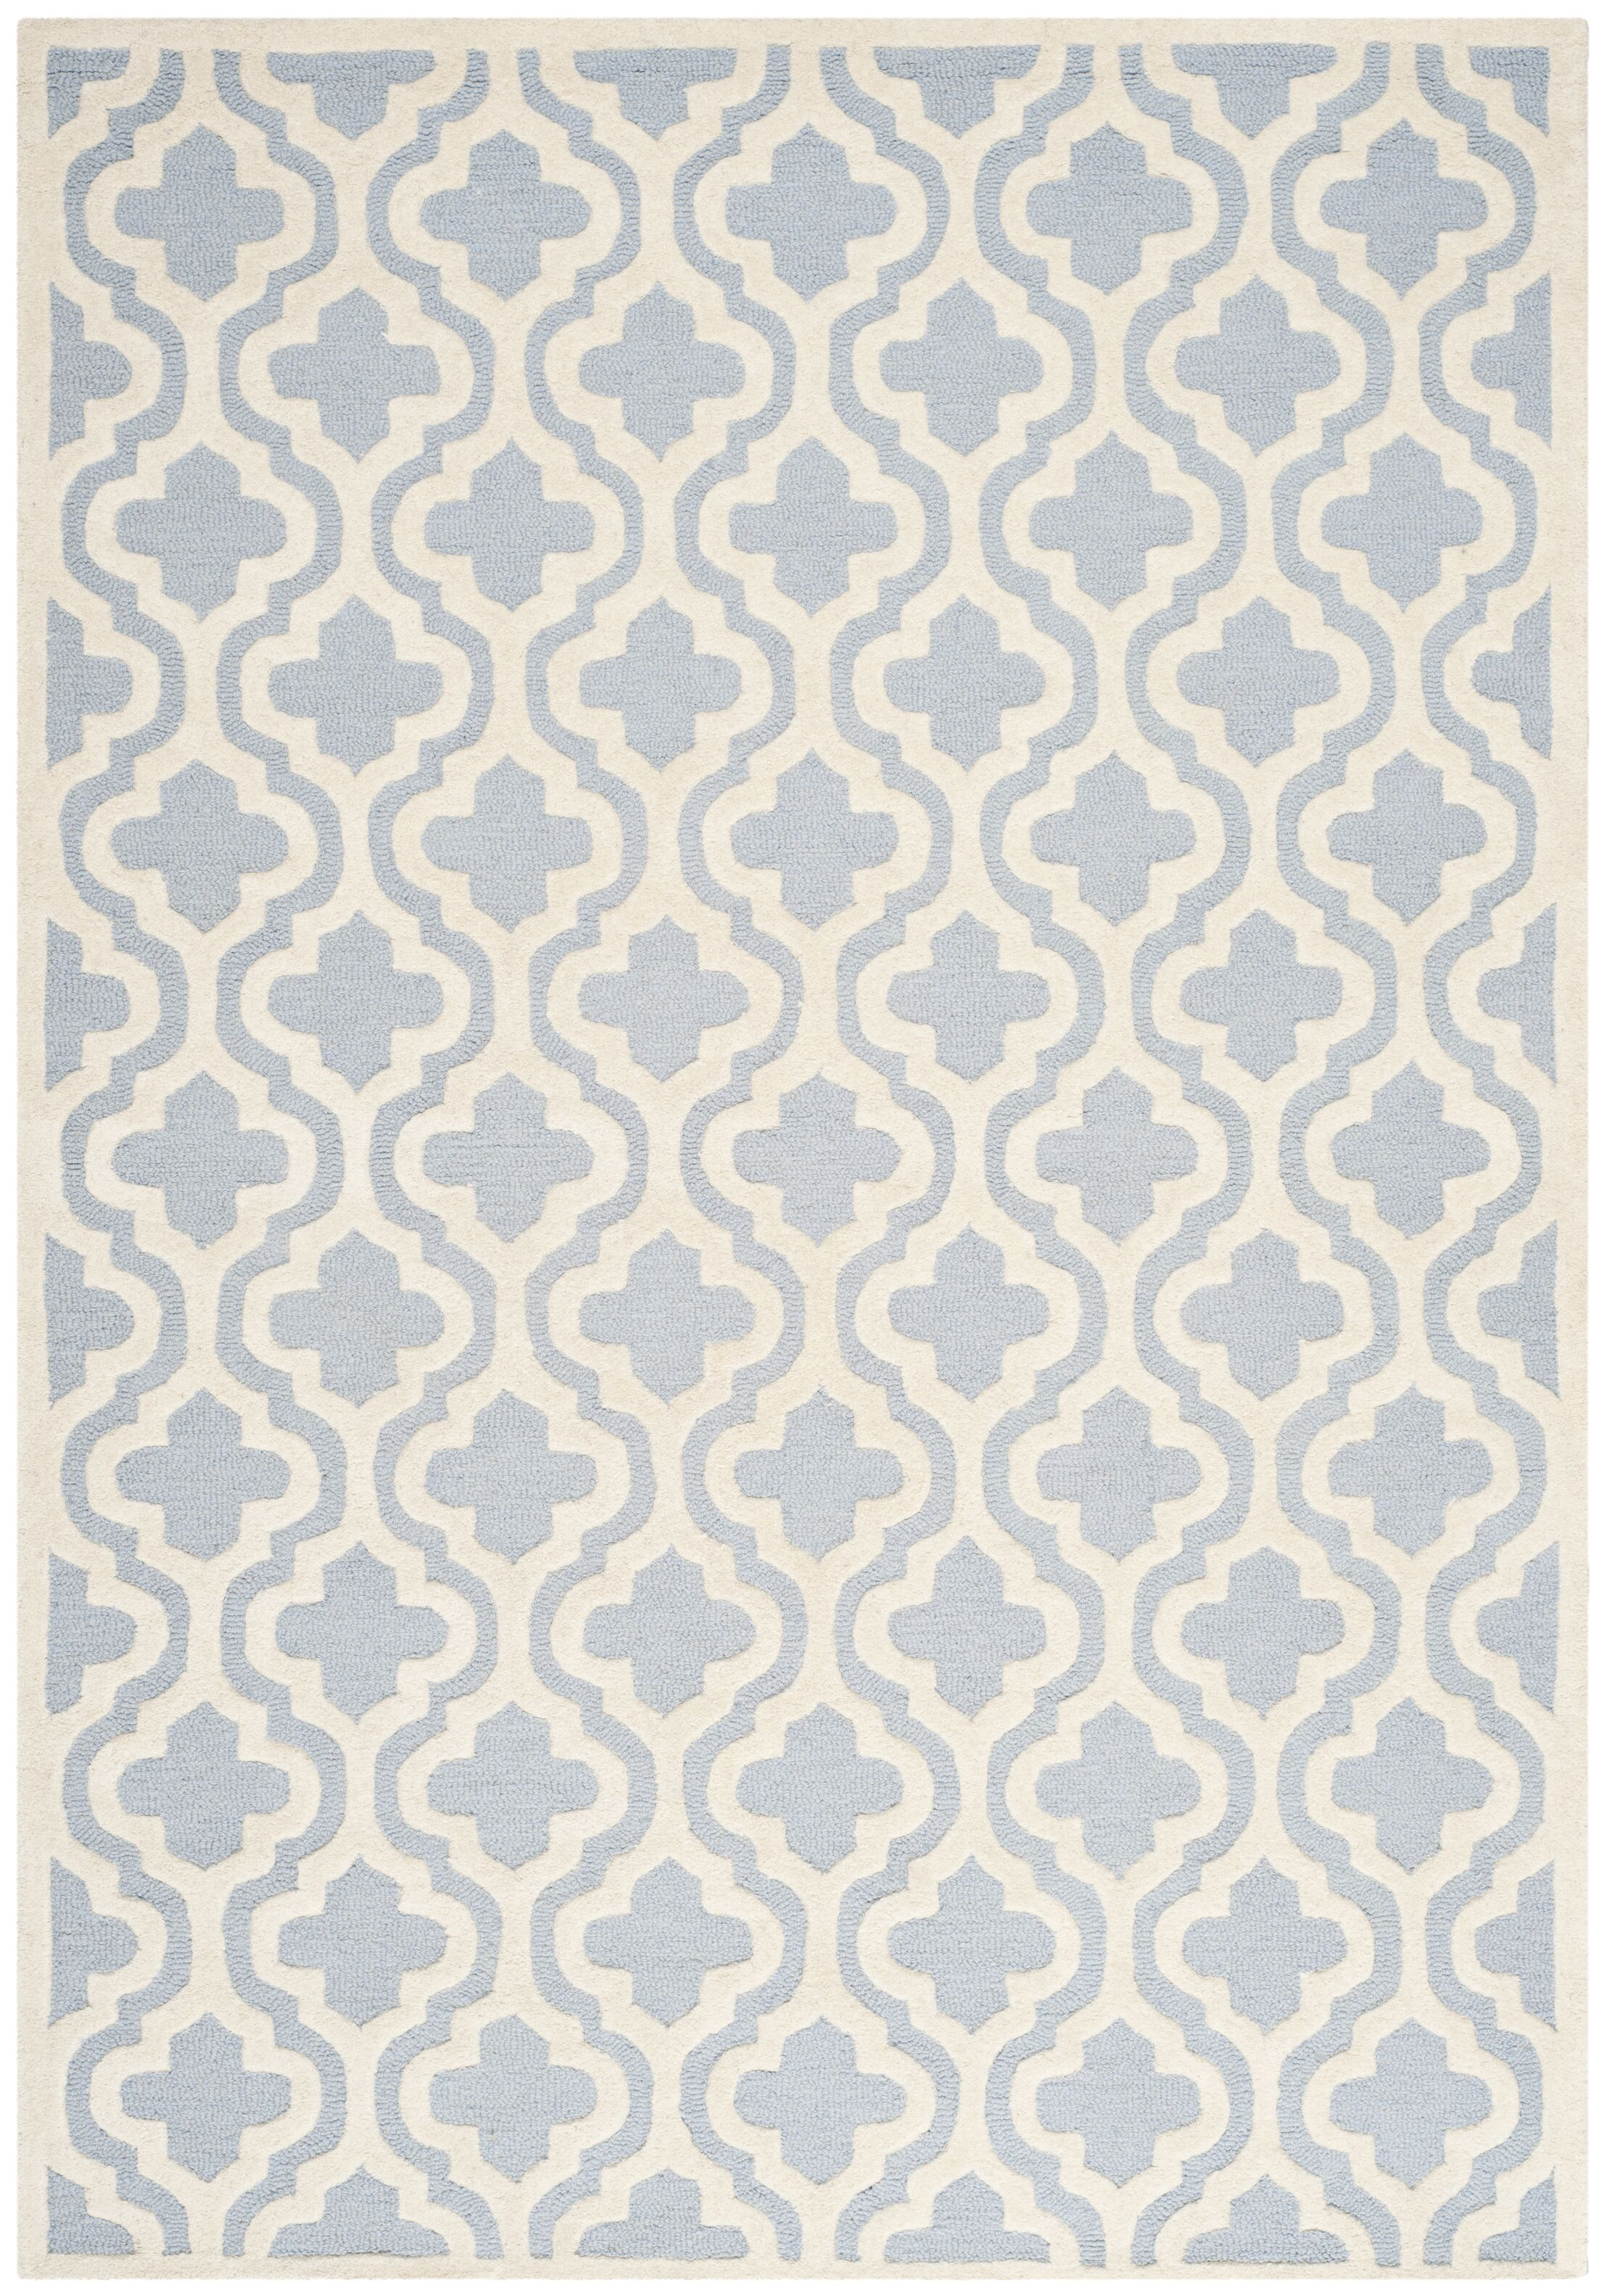 Martins Hand-Tufted Blue/Ivory Area Rug Rug Size: Rectangle 6' x 9'